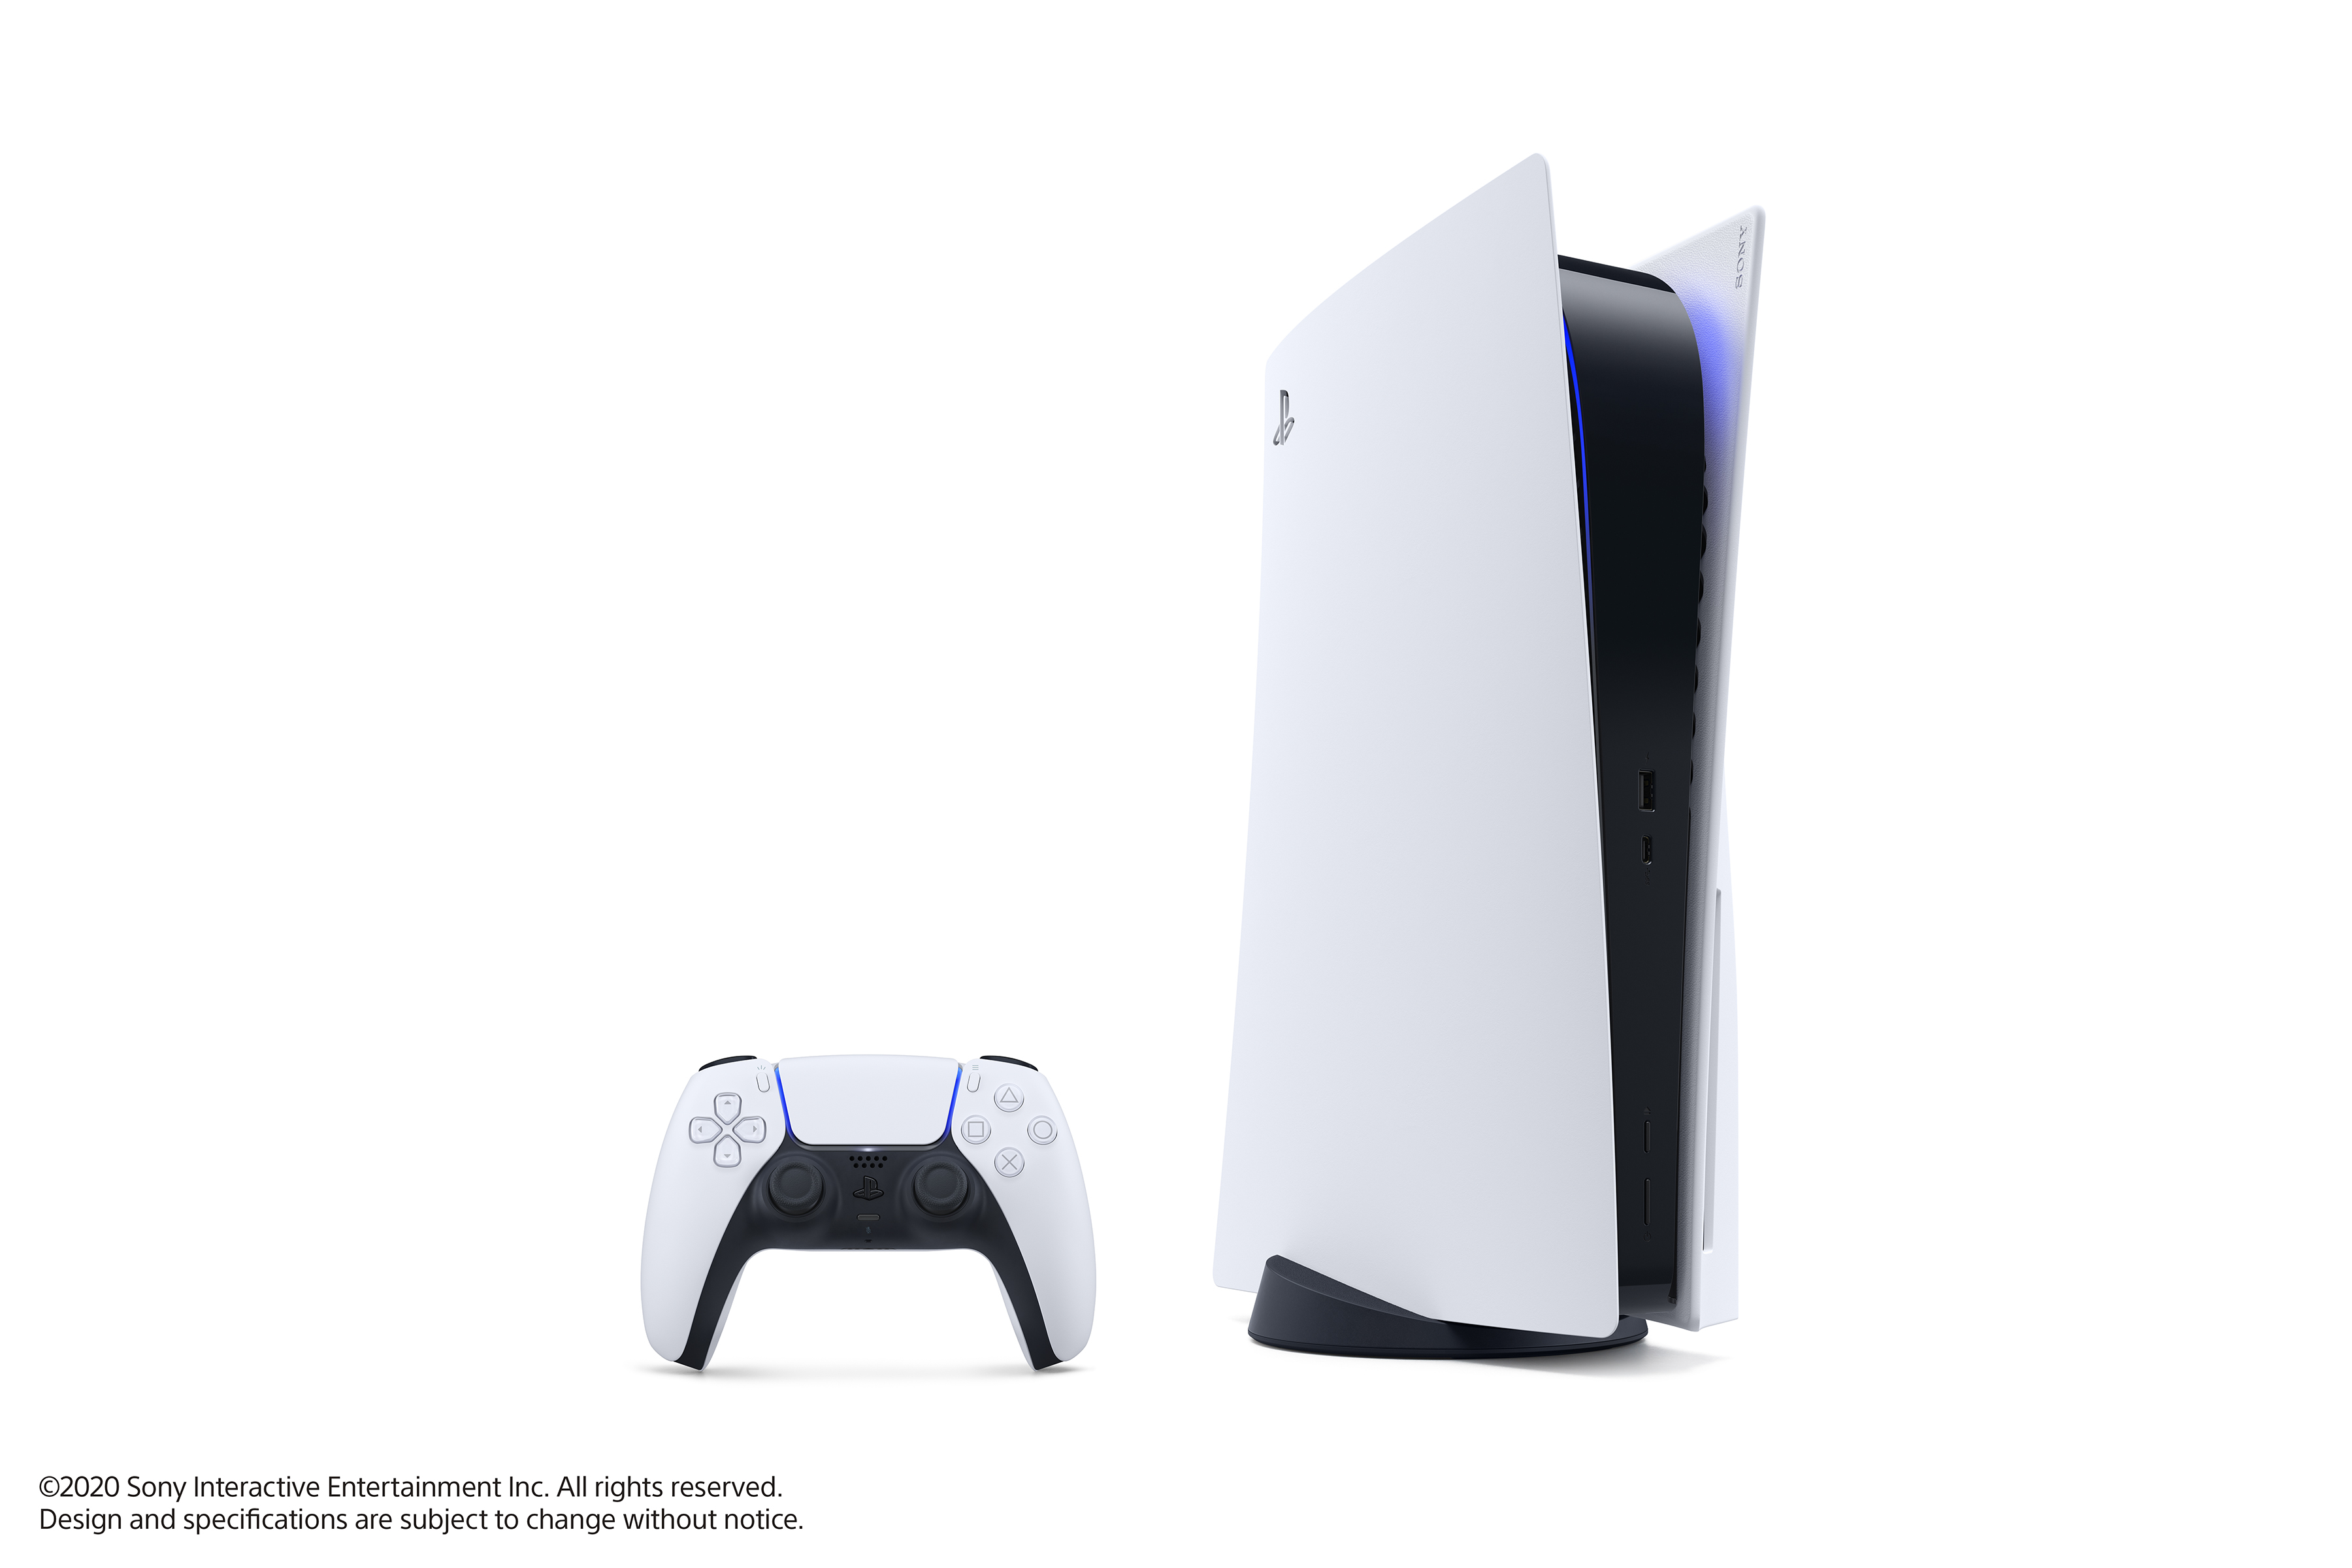 the DualSense controller standing to the left of the PlayStation 5 standing vertically